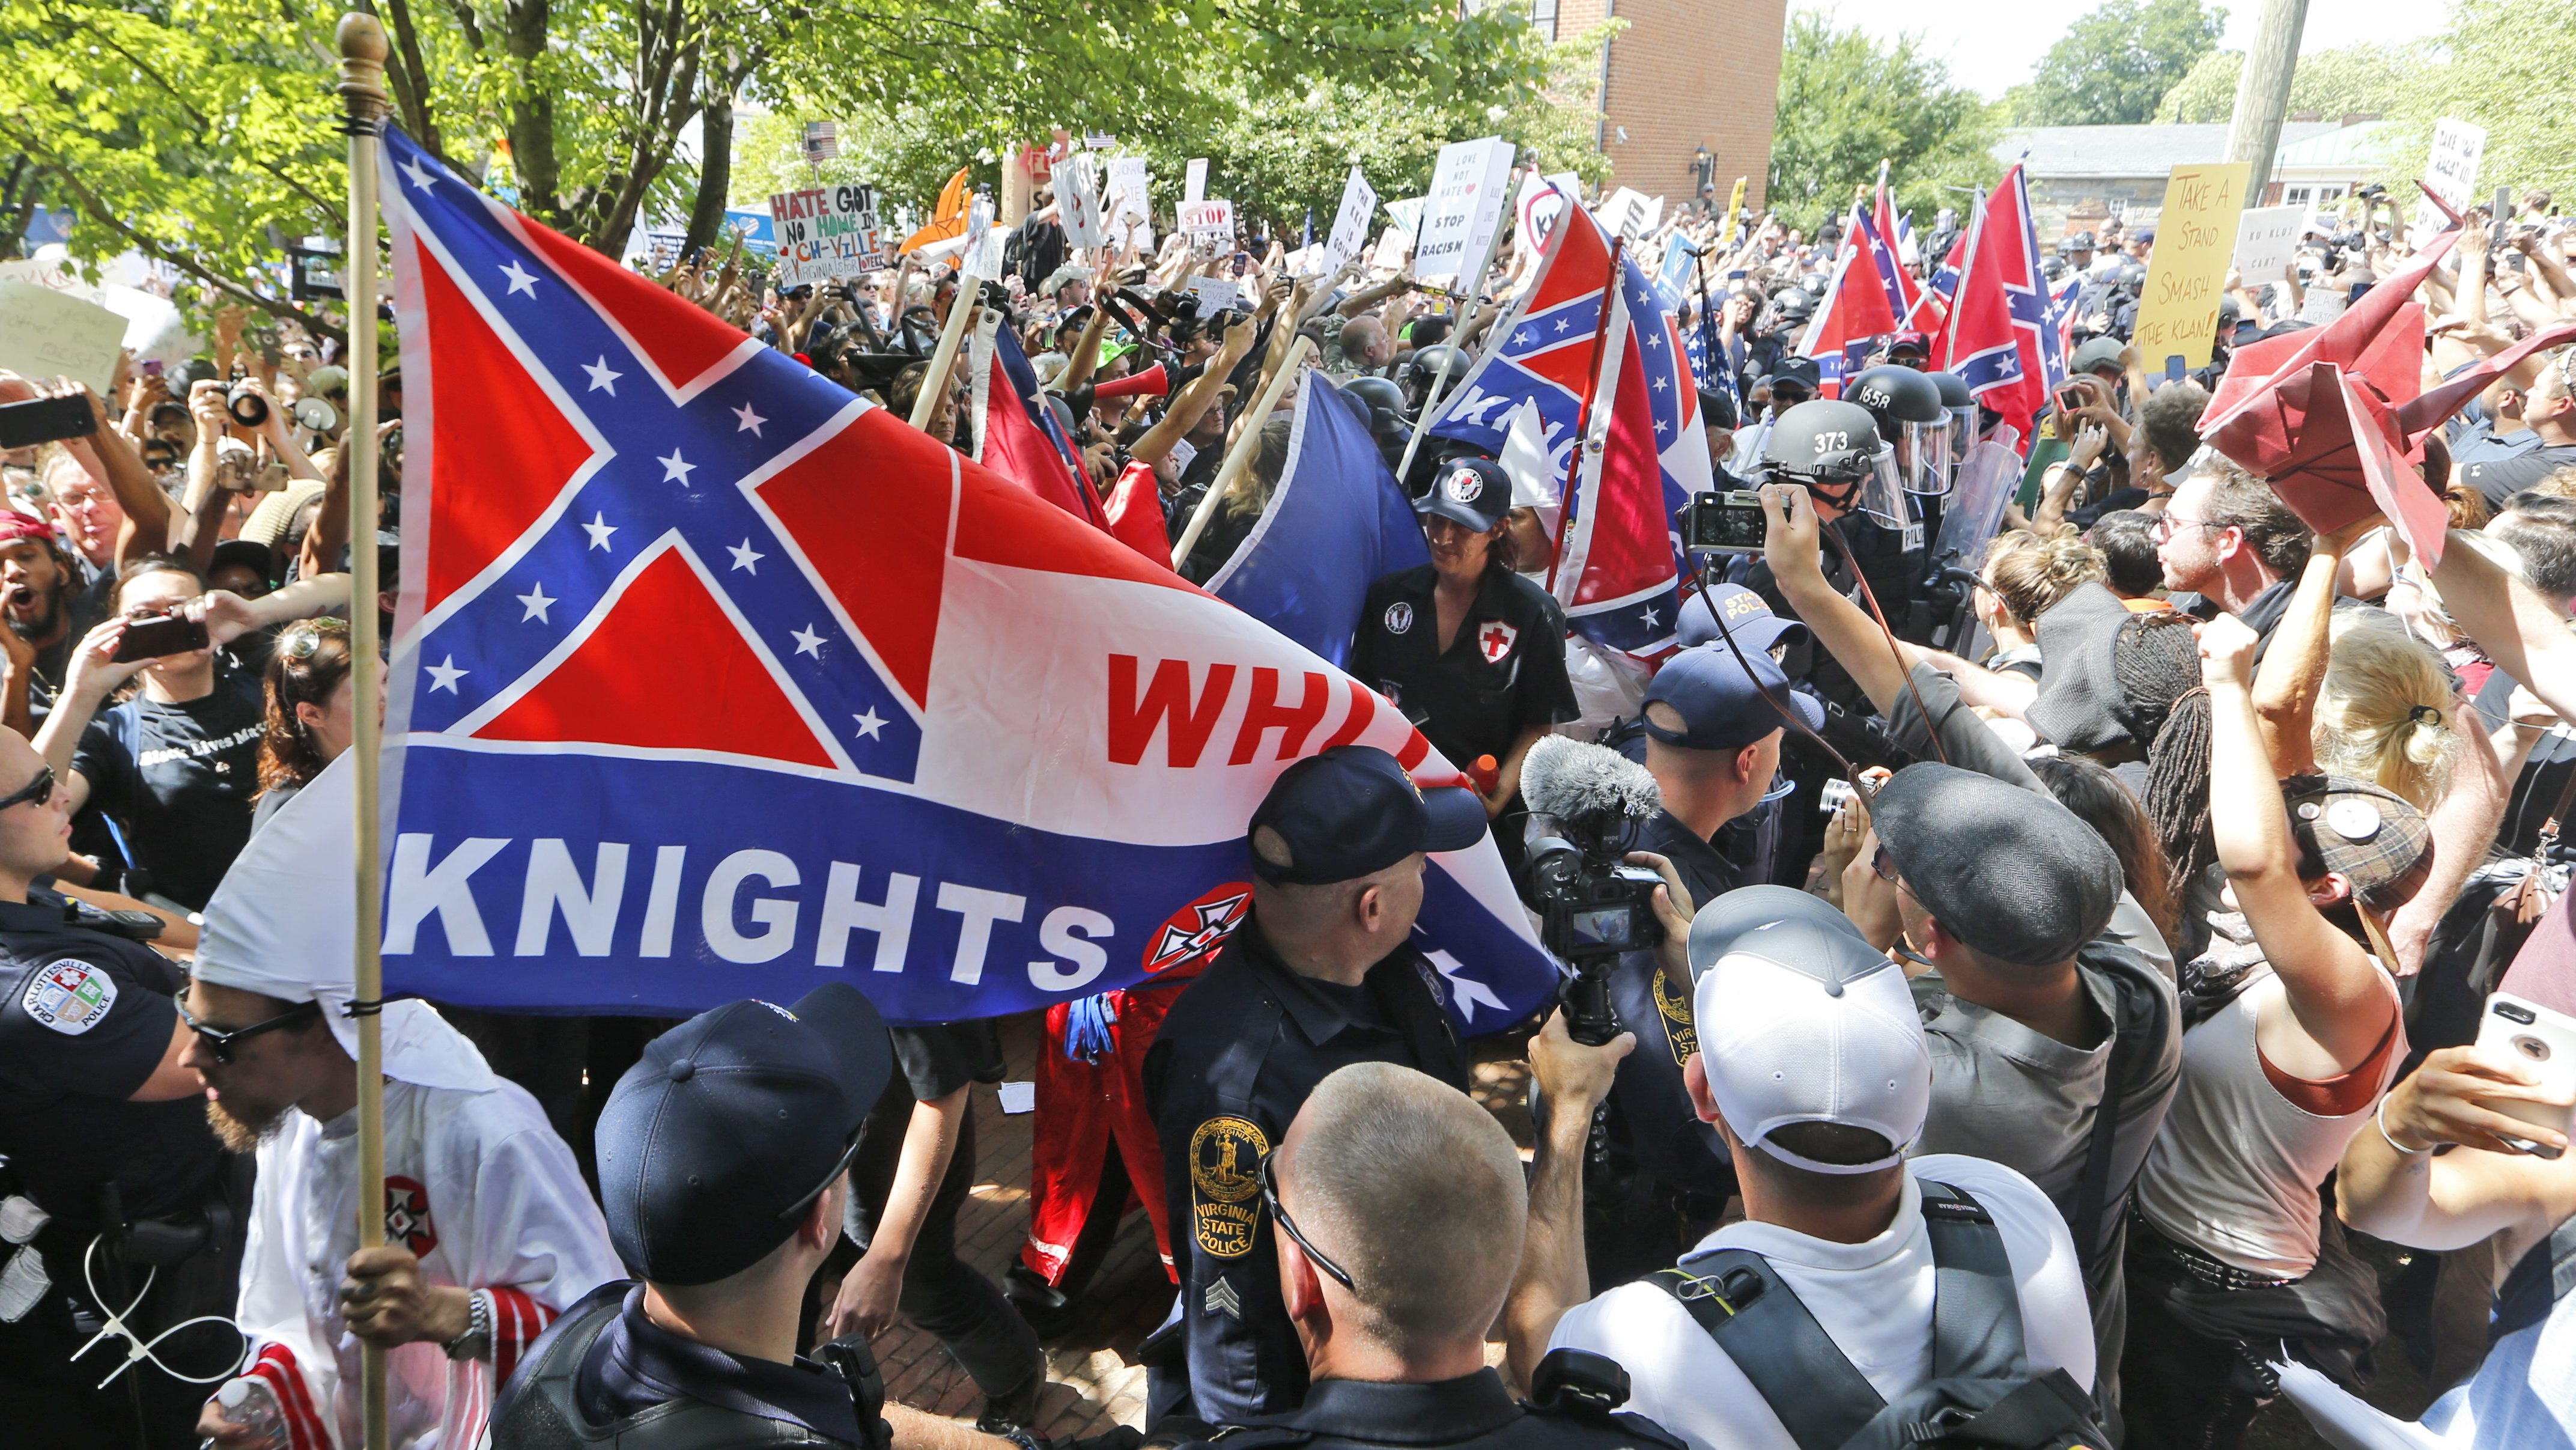 This July 8, 2017 photo shows members of the KKK escorted by police past a large group of protesters during a KKK rally in Charlottesville, Va.  Some white Southerners are again advocating for what the Confederacy tried and failed to do in the 1860s: secession from the Union. So-called Southern nationalists are within the group of demonstrators who are fighting the removal of Confederate monuments around the South. They say it's time for Southern states to secede again and become independent of the United States.(AP Photo/Steve Helber)